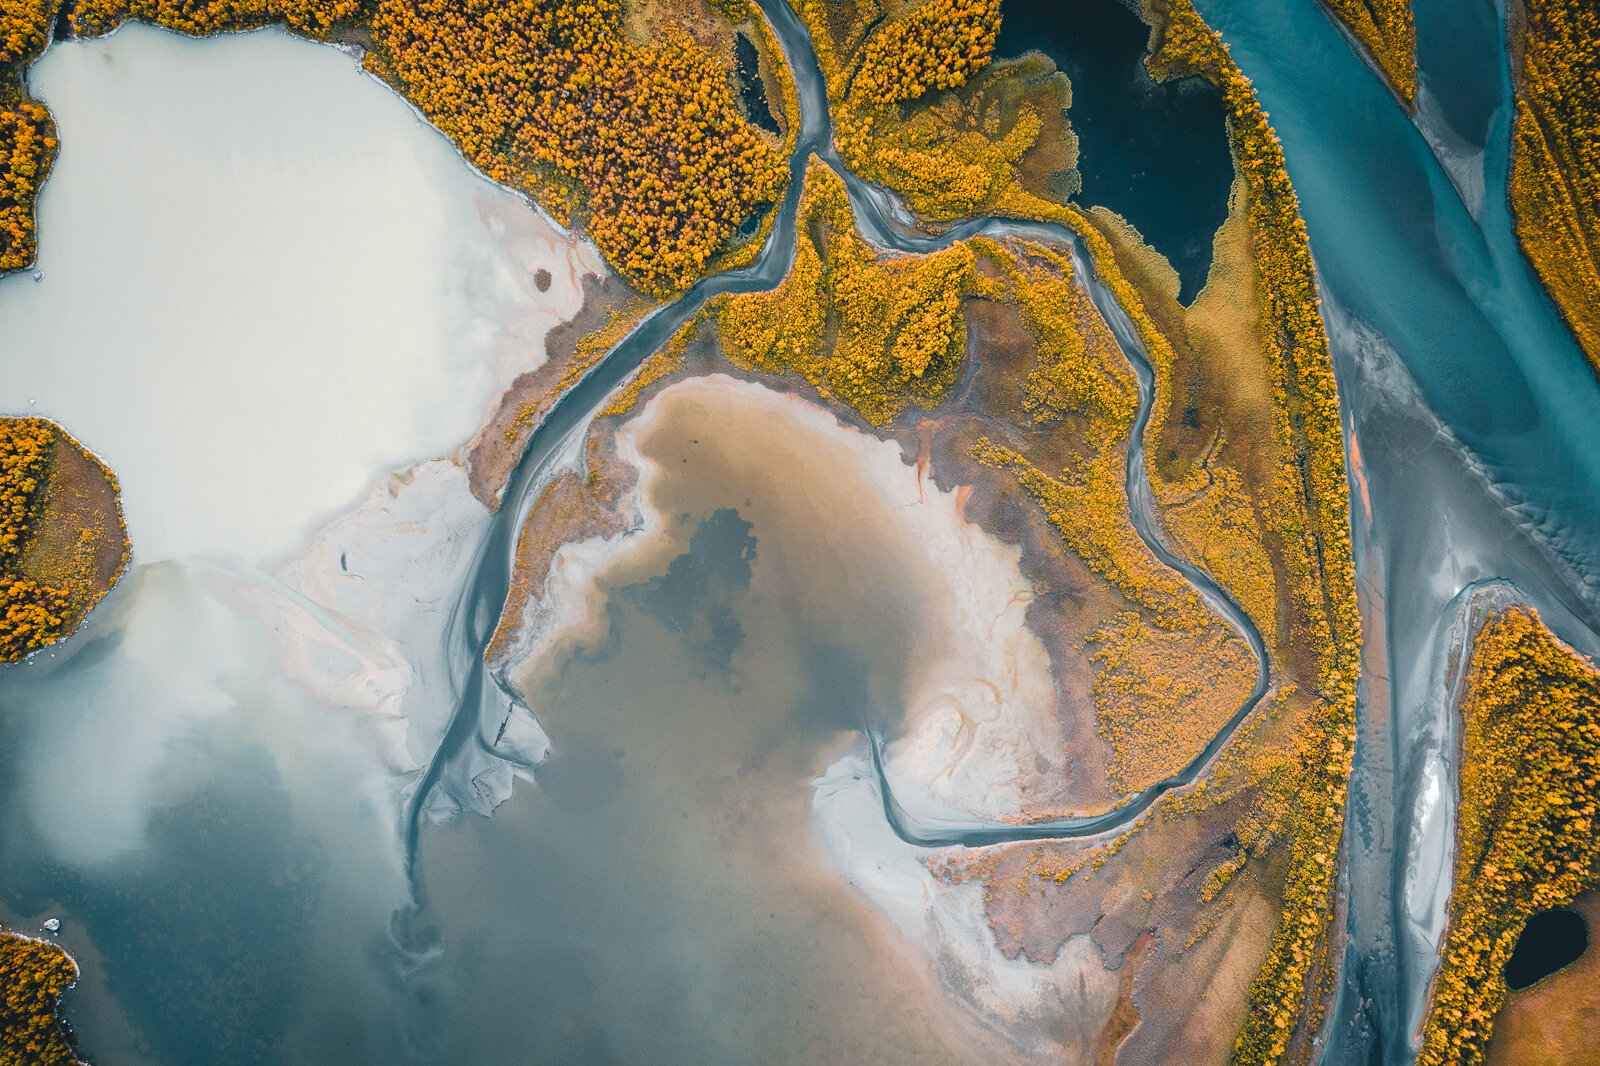 Glacial rivers surrounded by the first signs of Autumn (As Seen from a Helicopter)